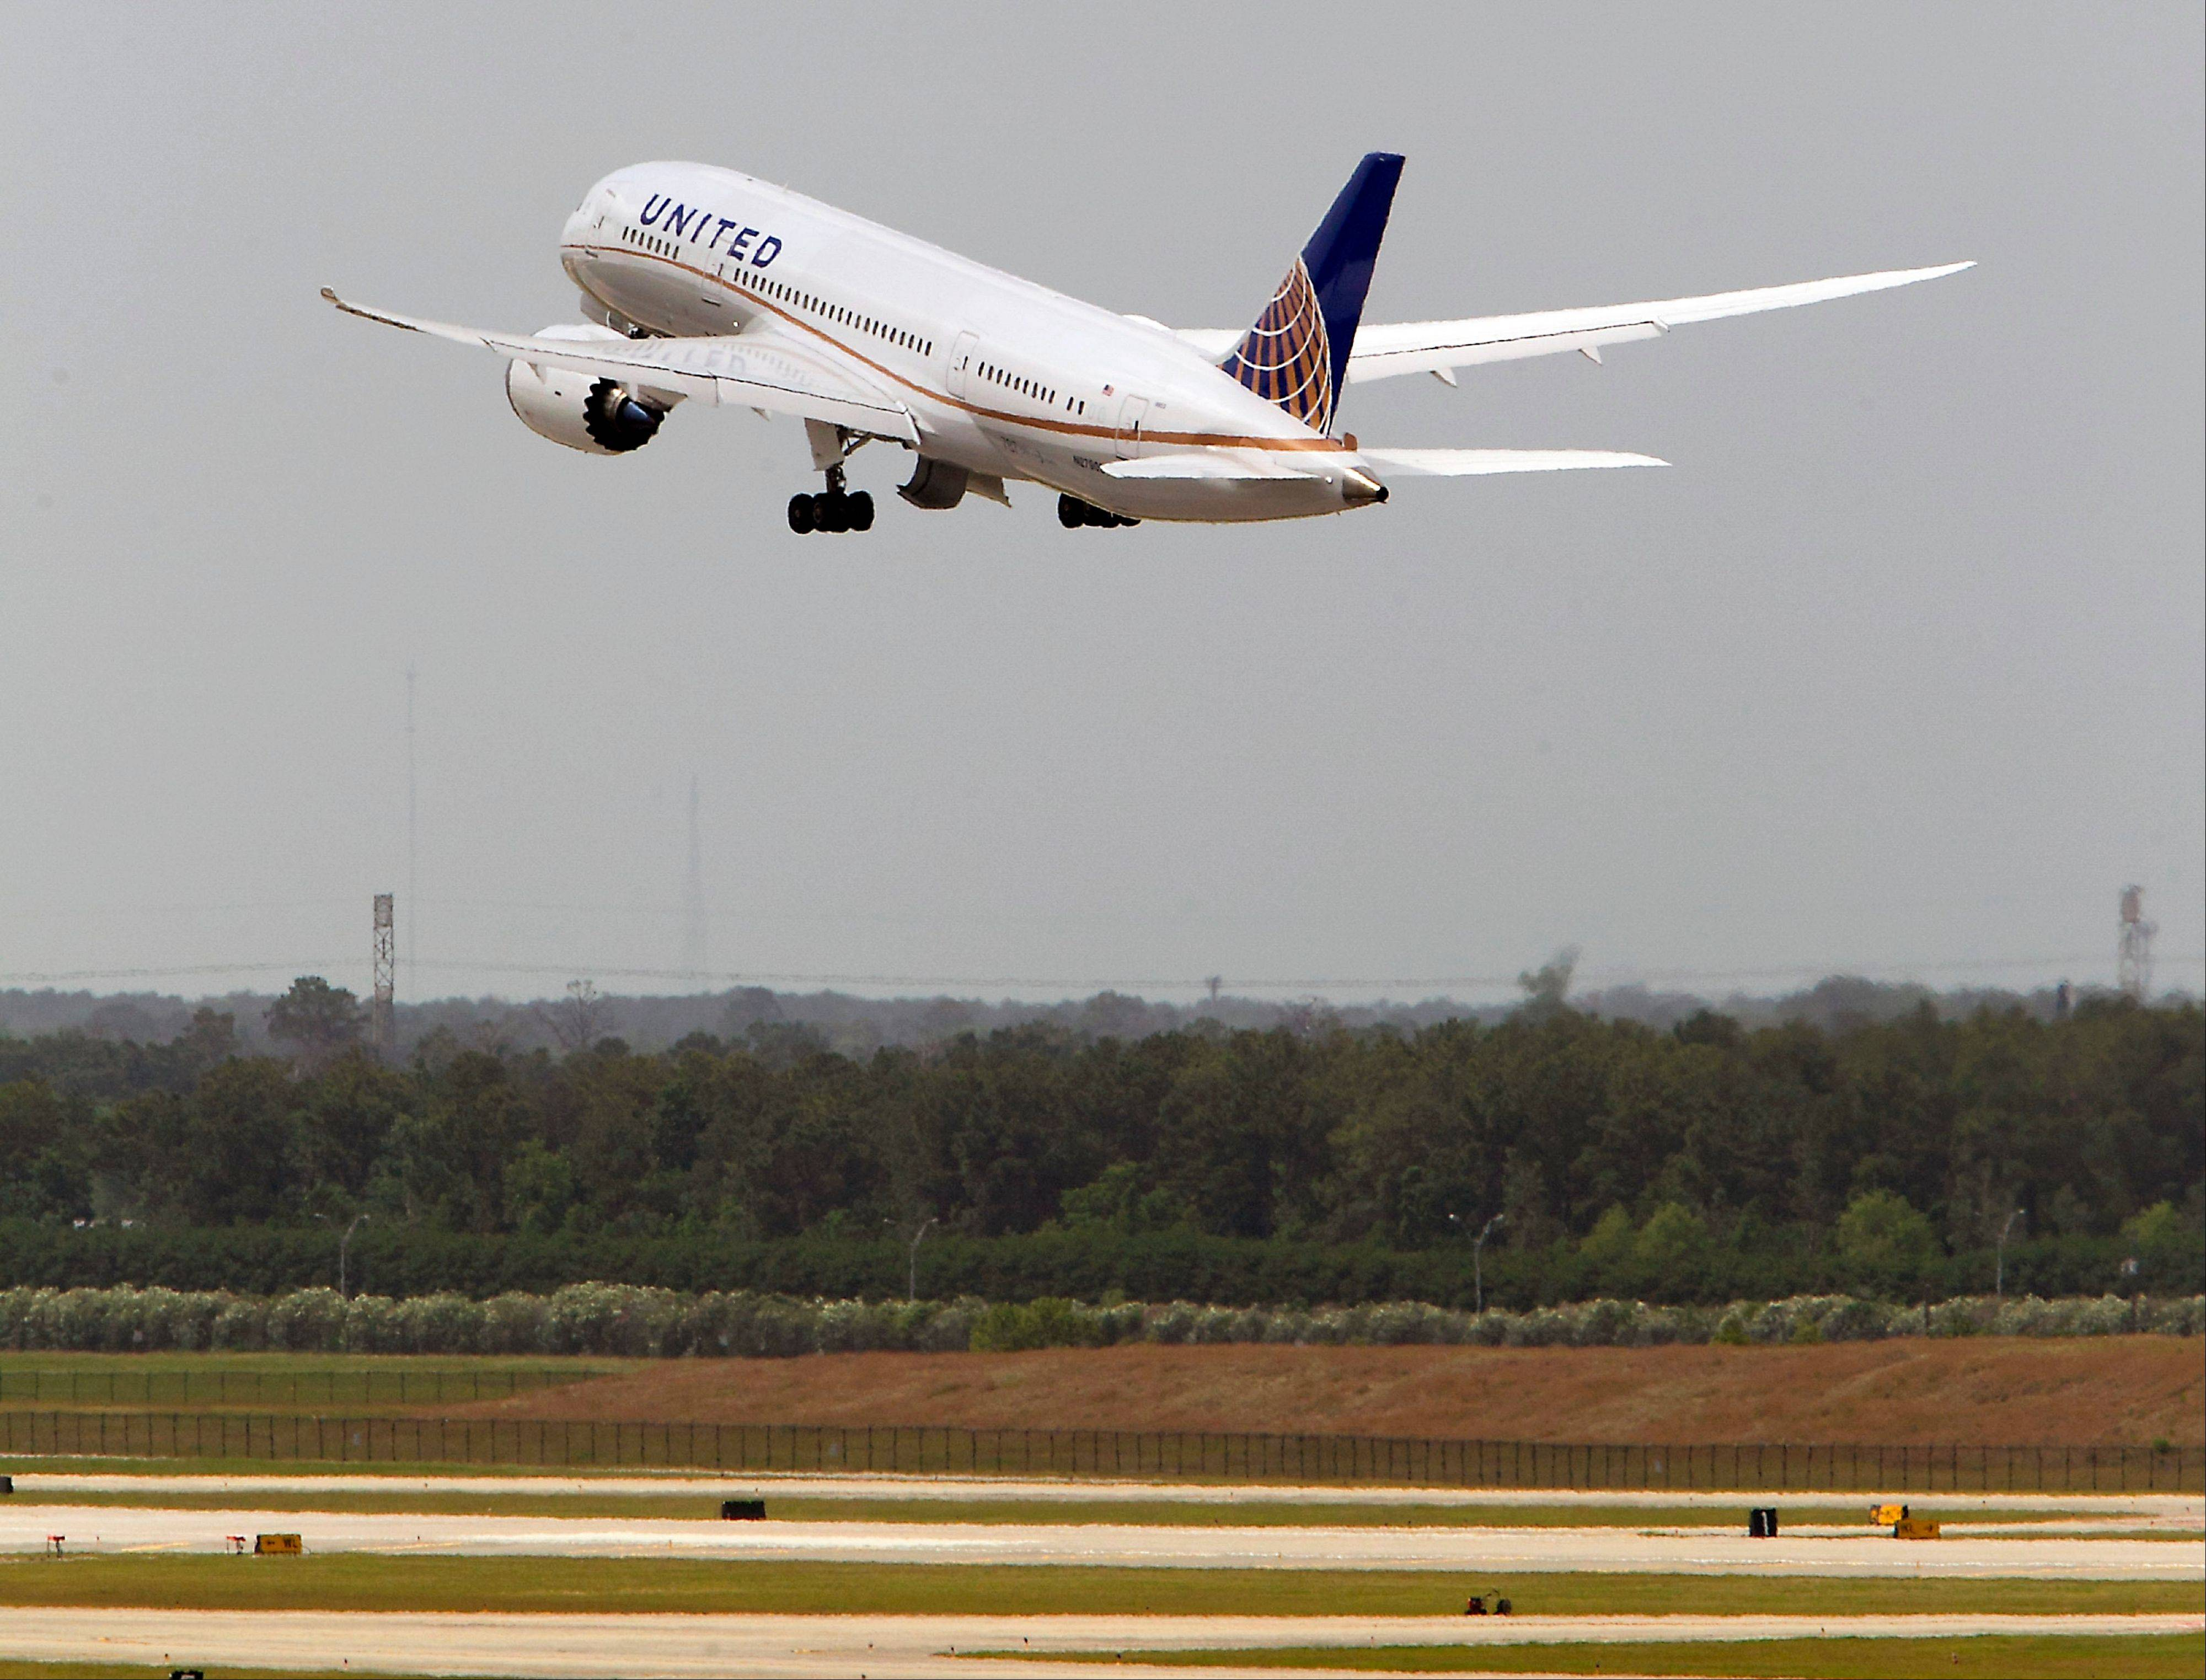 Chicago-based Boeing Co. has asked airlines to inspect emergency beacons on a range of planes after ANA Holdings Inc. and United Airlines found faults in devices on 787s linked to a fire in a parked Dreamliner.